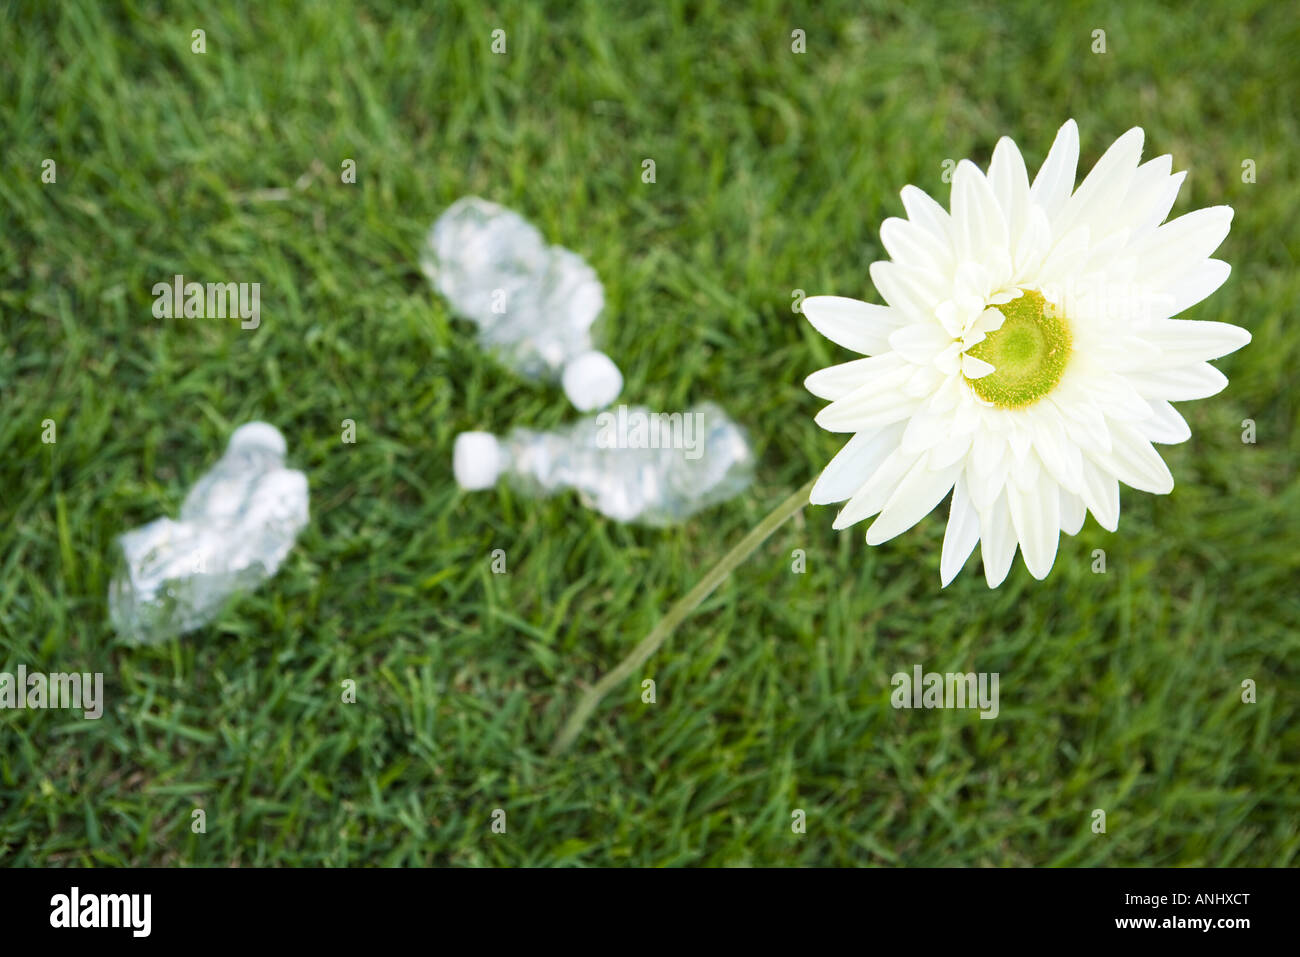 Flower growing next to discarded water bottles, high angle view Stock Photo